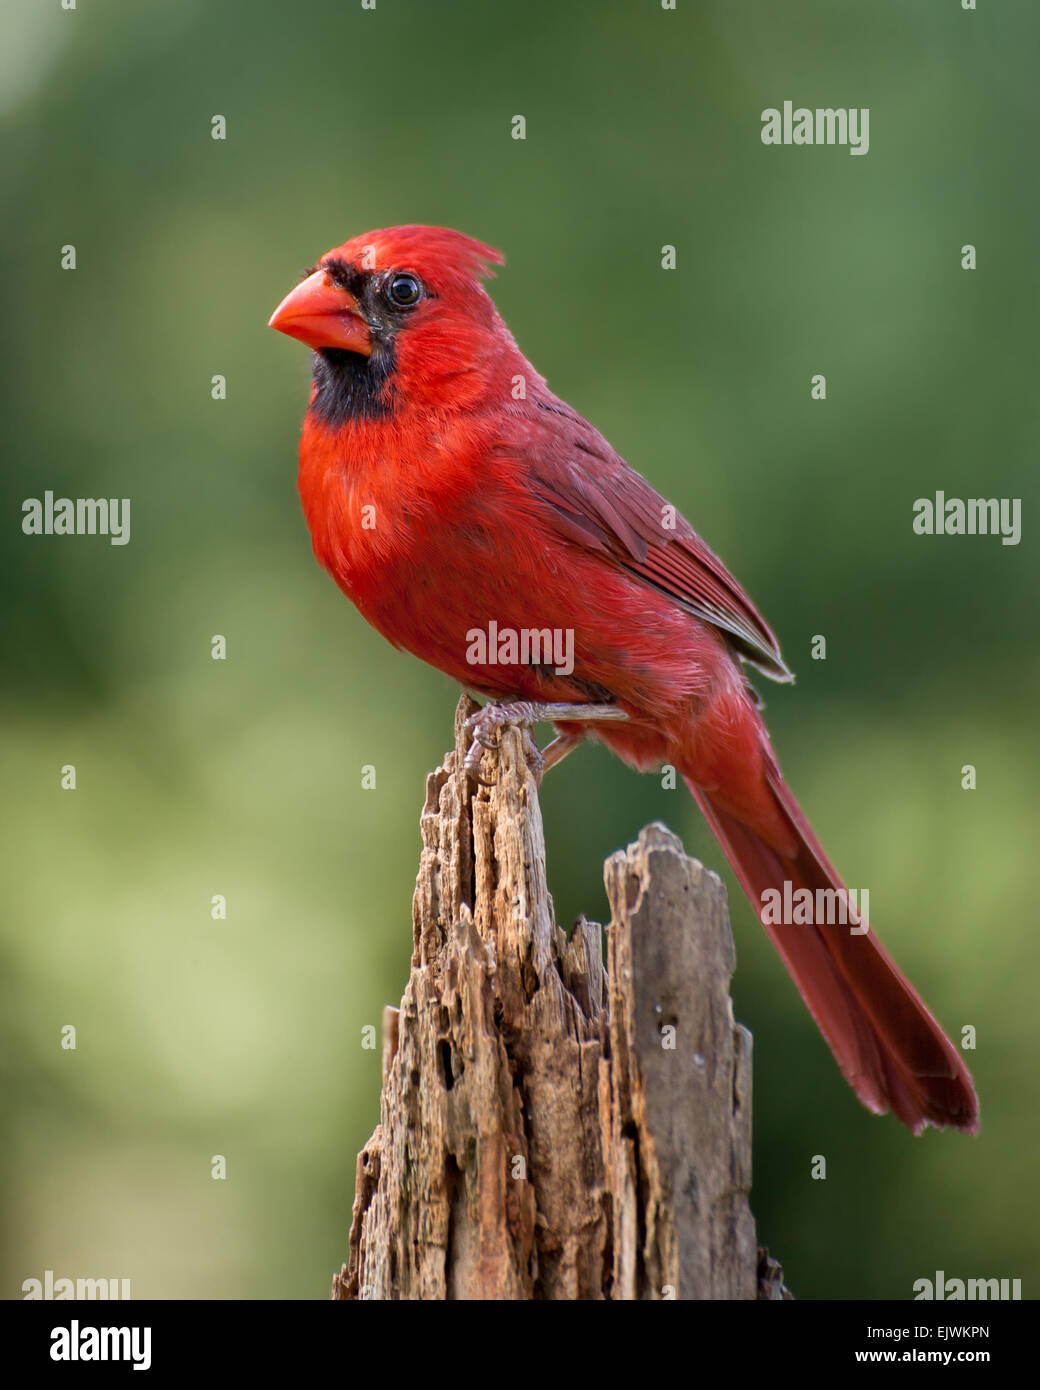 A northern cardinal perched in early morning. - Stock Image